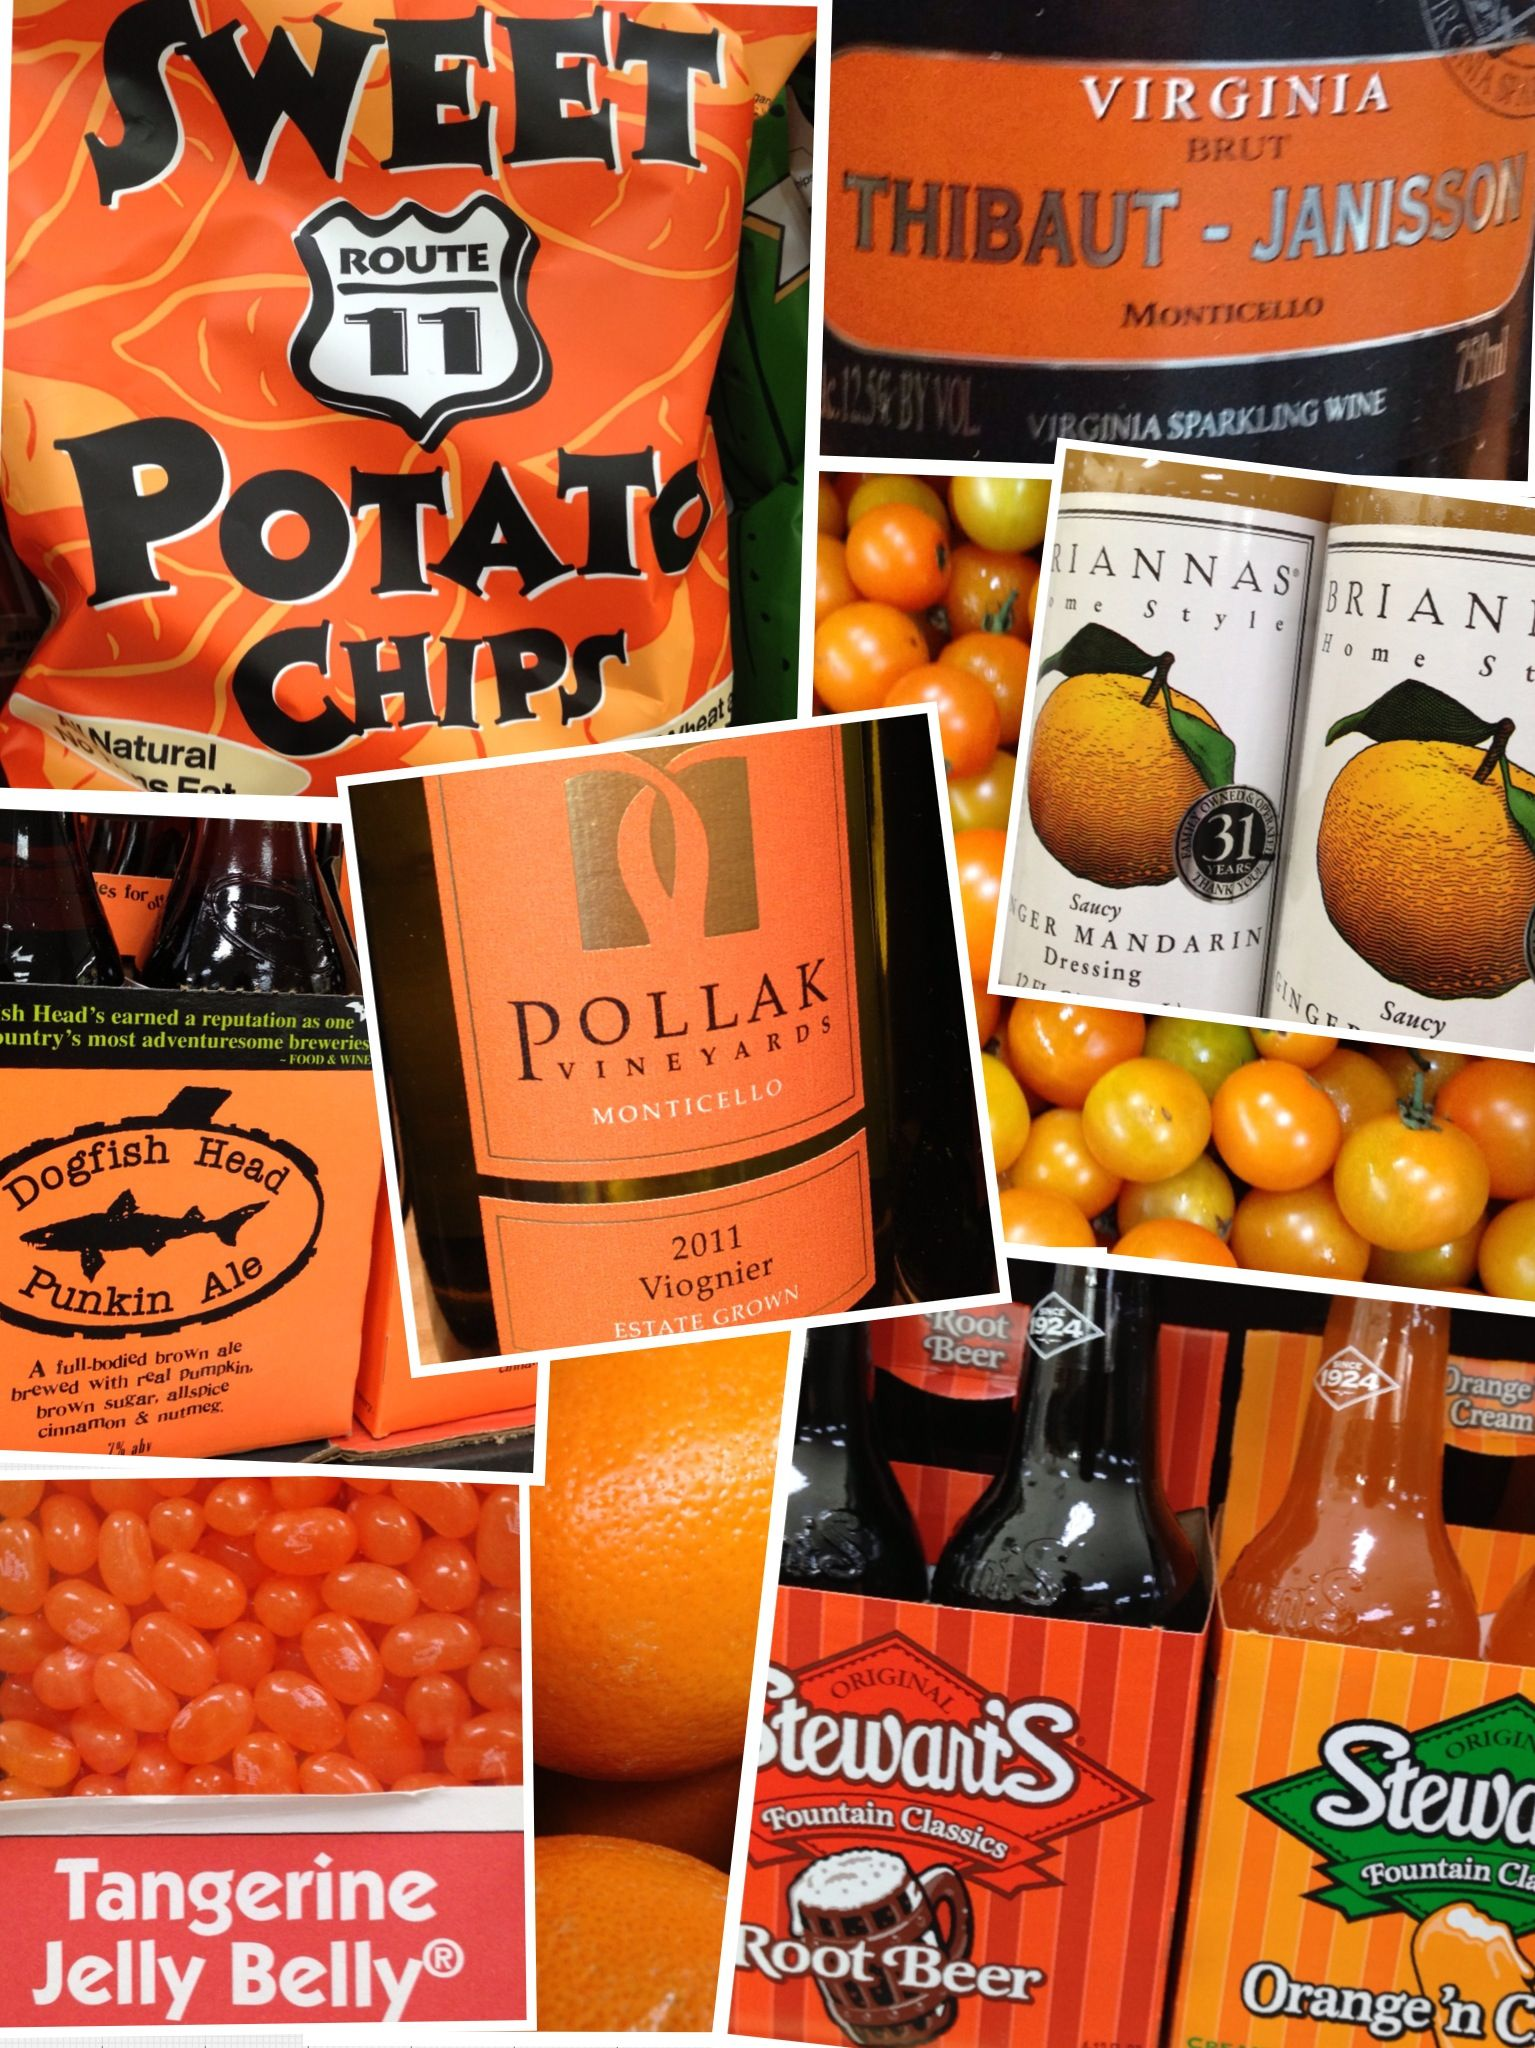 If you're in town for a sporting event, grab orange tailgating supplies from